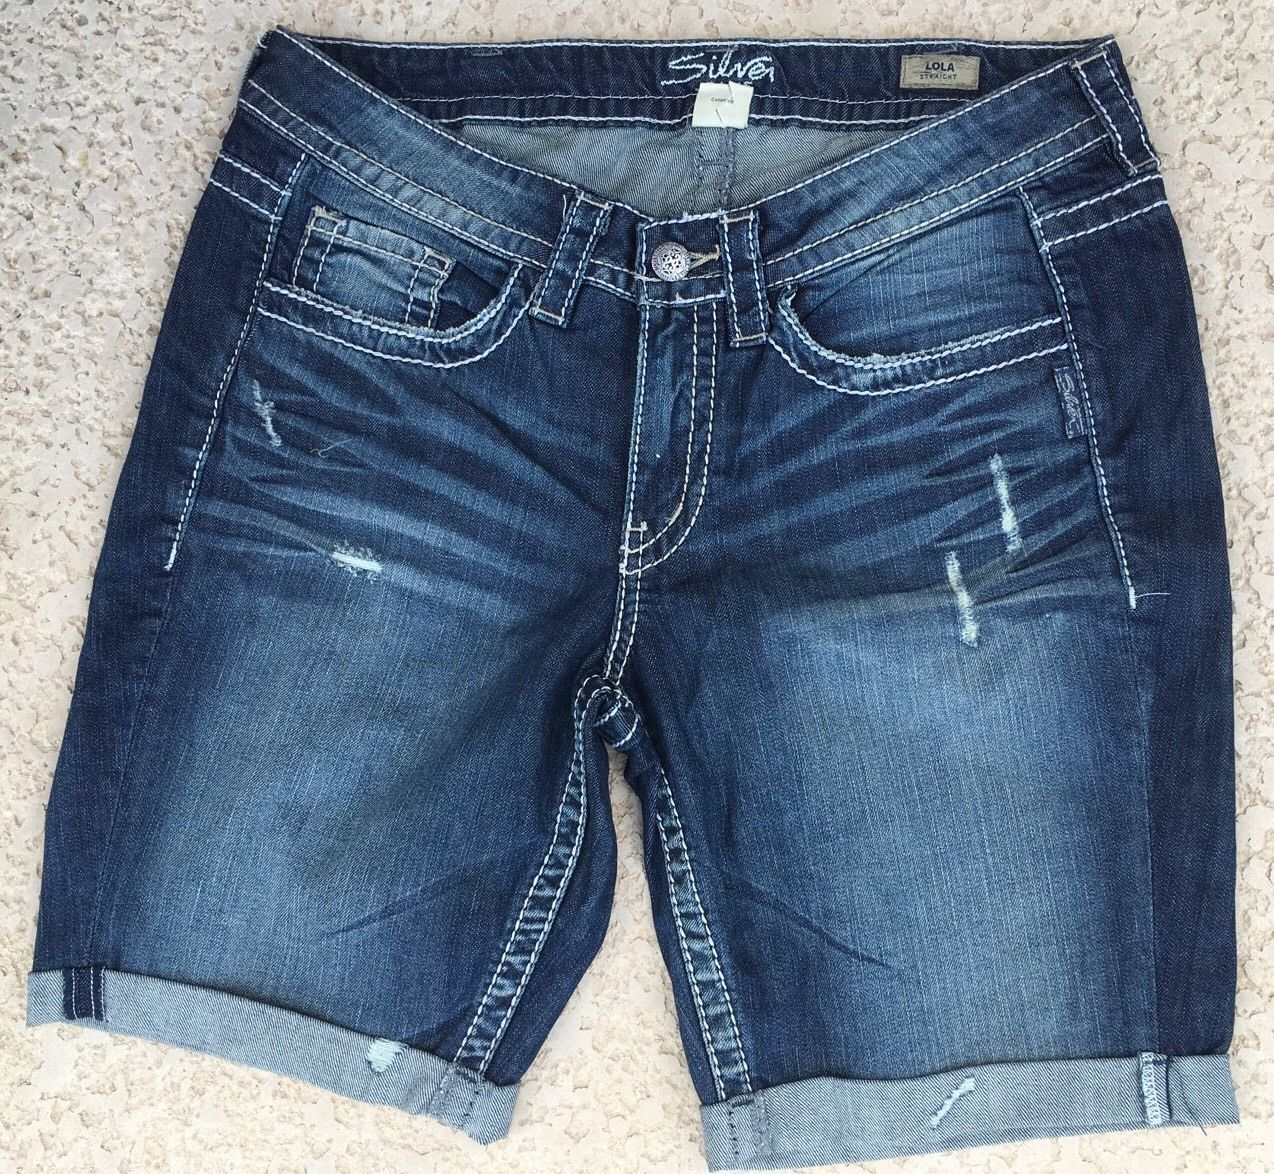 WOMENS SILVER JEANS SHORTS Low Rise Lola Dark Stretch Denim Jean Short Plus 14